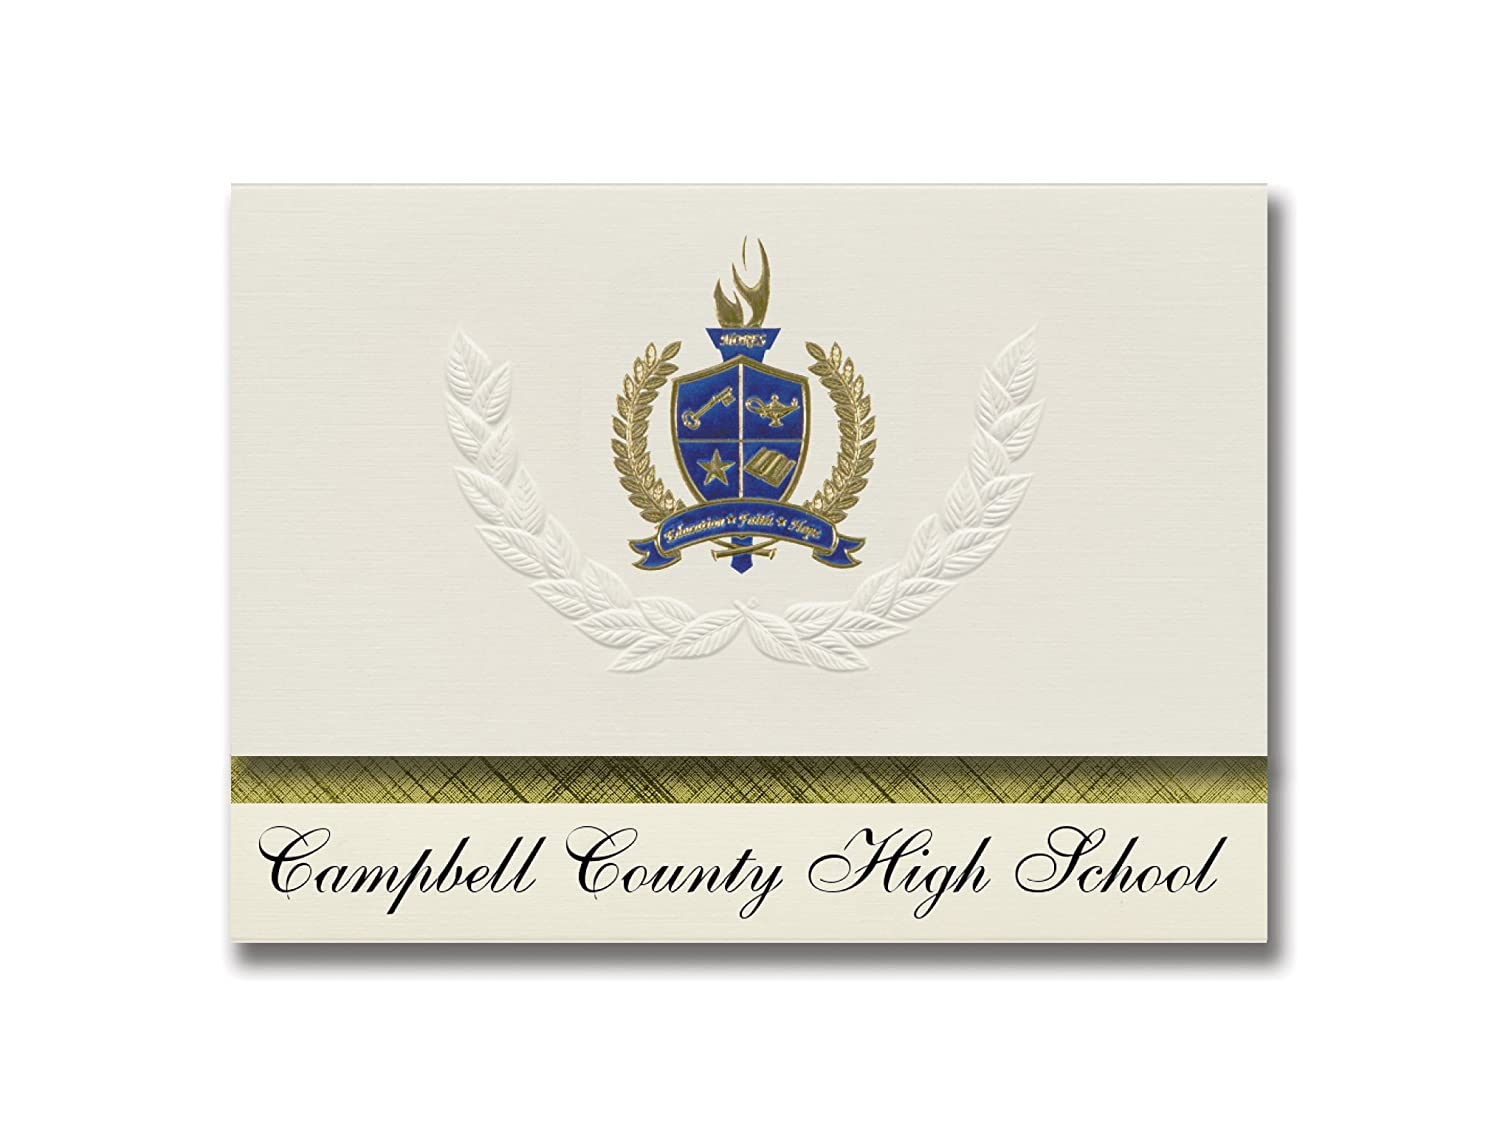 Signature Announcements Campbell County High School (Gillette, WY) Graduation Announcements, Presidential style, Elite package of 25 with Gold & Blue Metallic Foil seal